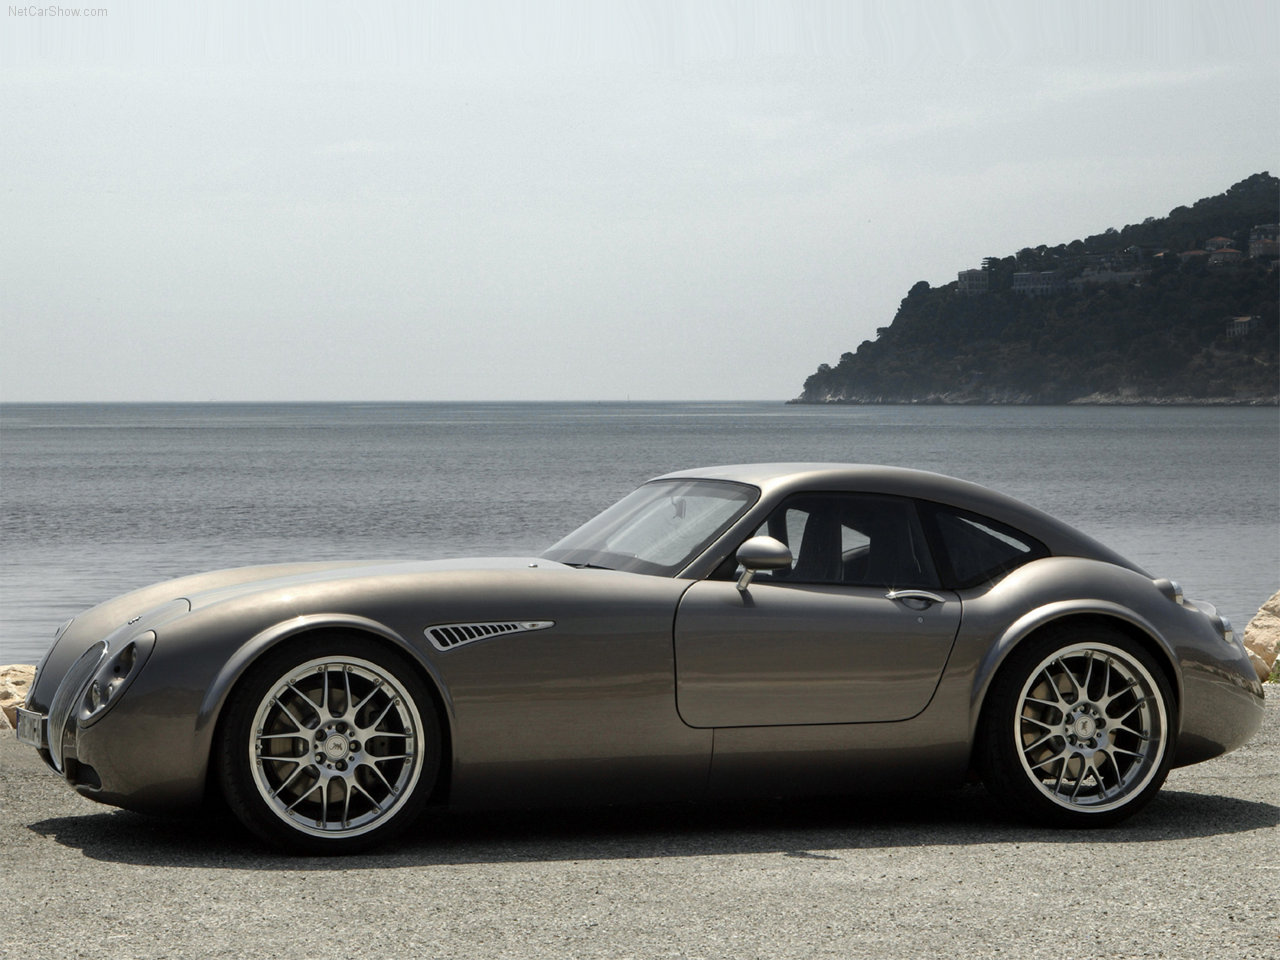 Wiesmann Mf4 Interesting News With The Best Wiesmann Mf4 Pictures On Motorinfo Org